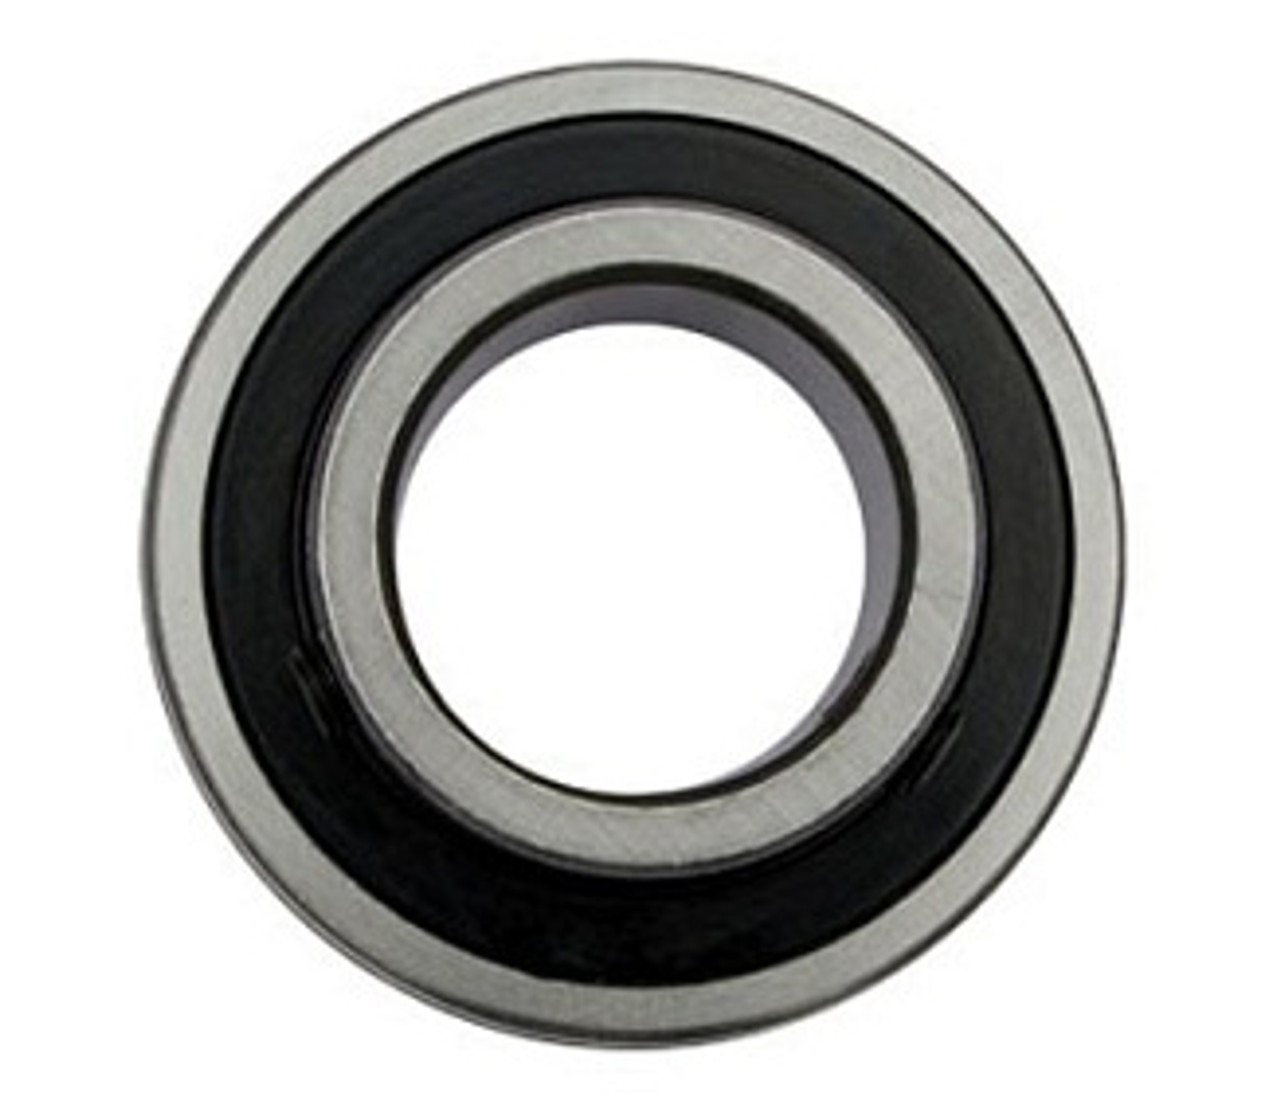 Butcher Boy B12,B14,B16,SA16 & SA20 - Saw Guide Bearing with Neoprene Seals - BB SGBN